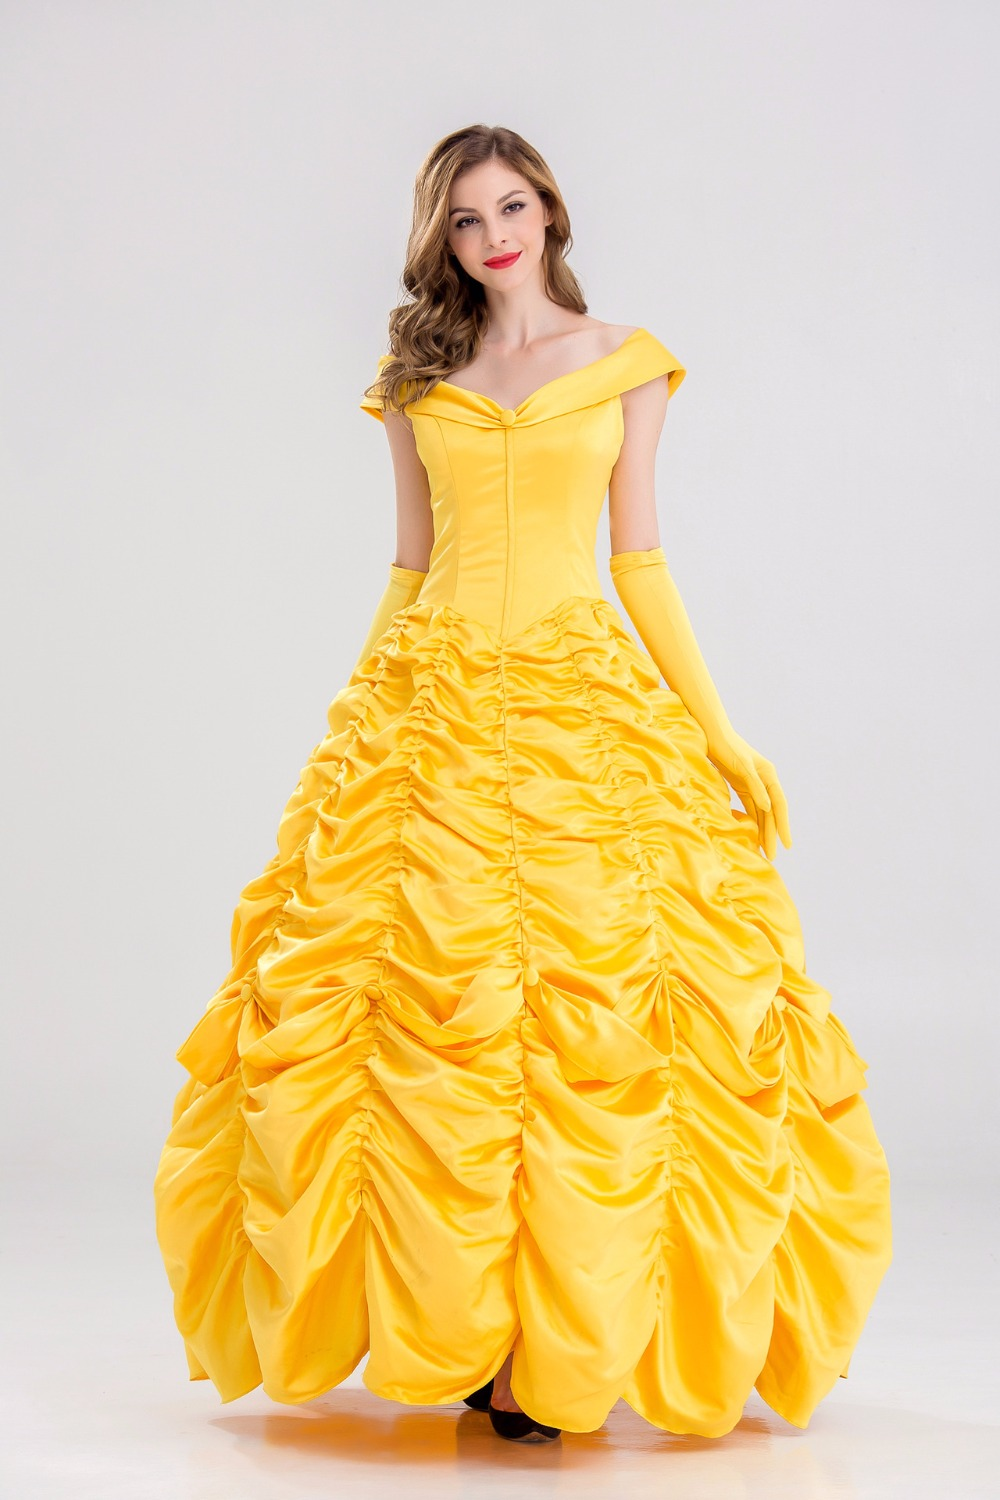 2017 Movie Beauty And The Beast Princess Belle Cosplay Costume Emma Watson Dress Halloween Costumes For Adult Women On Aliexpress